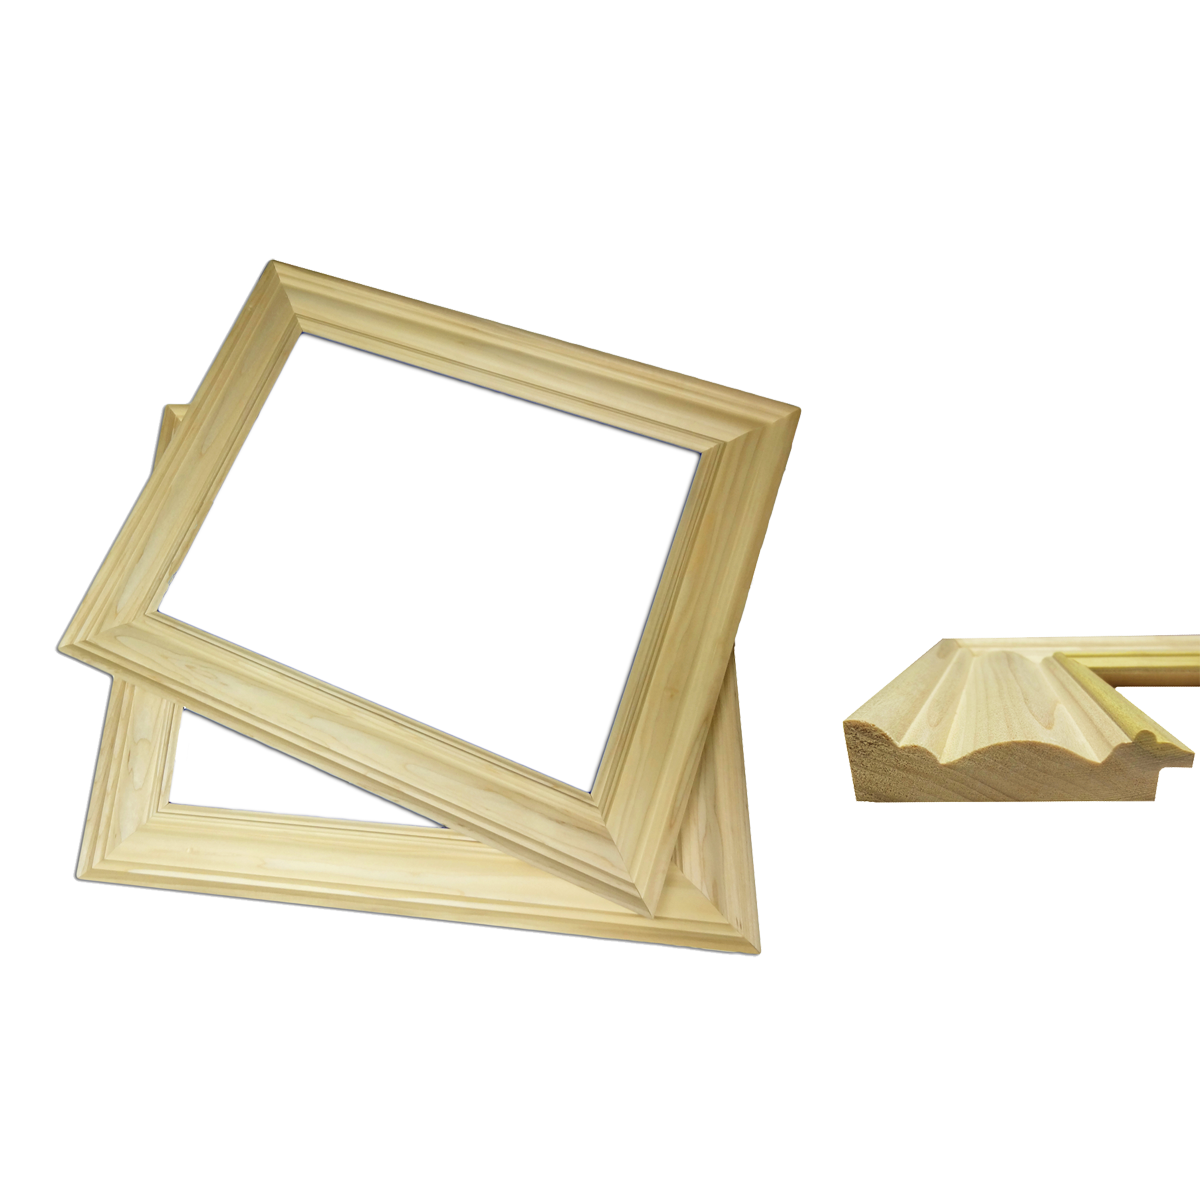 Buy Unfinished Picture Frames Bulk - unfinished wood frames ...